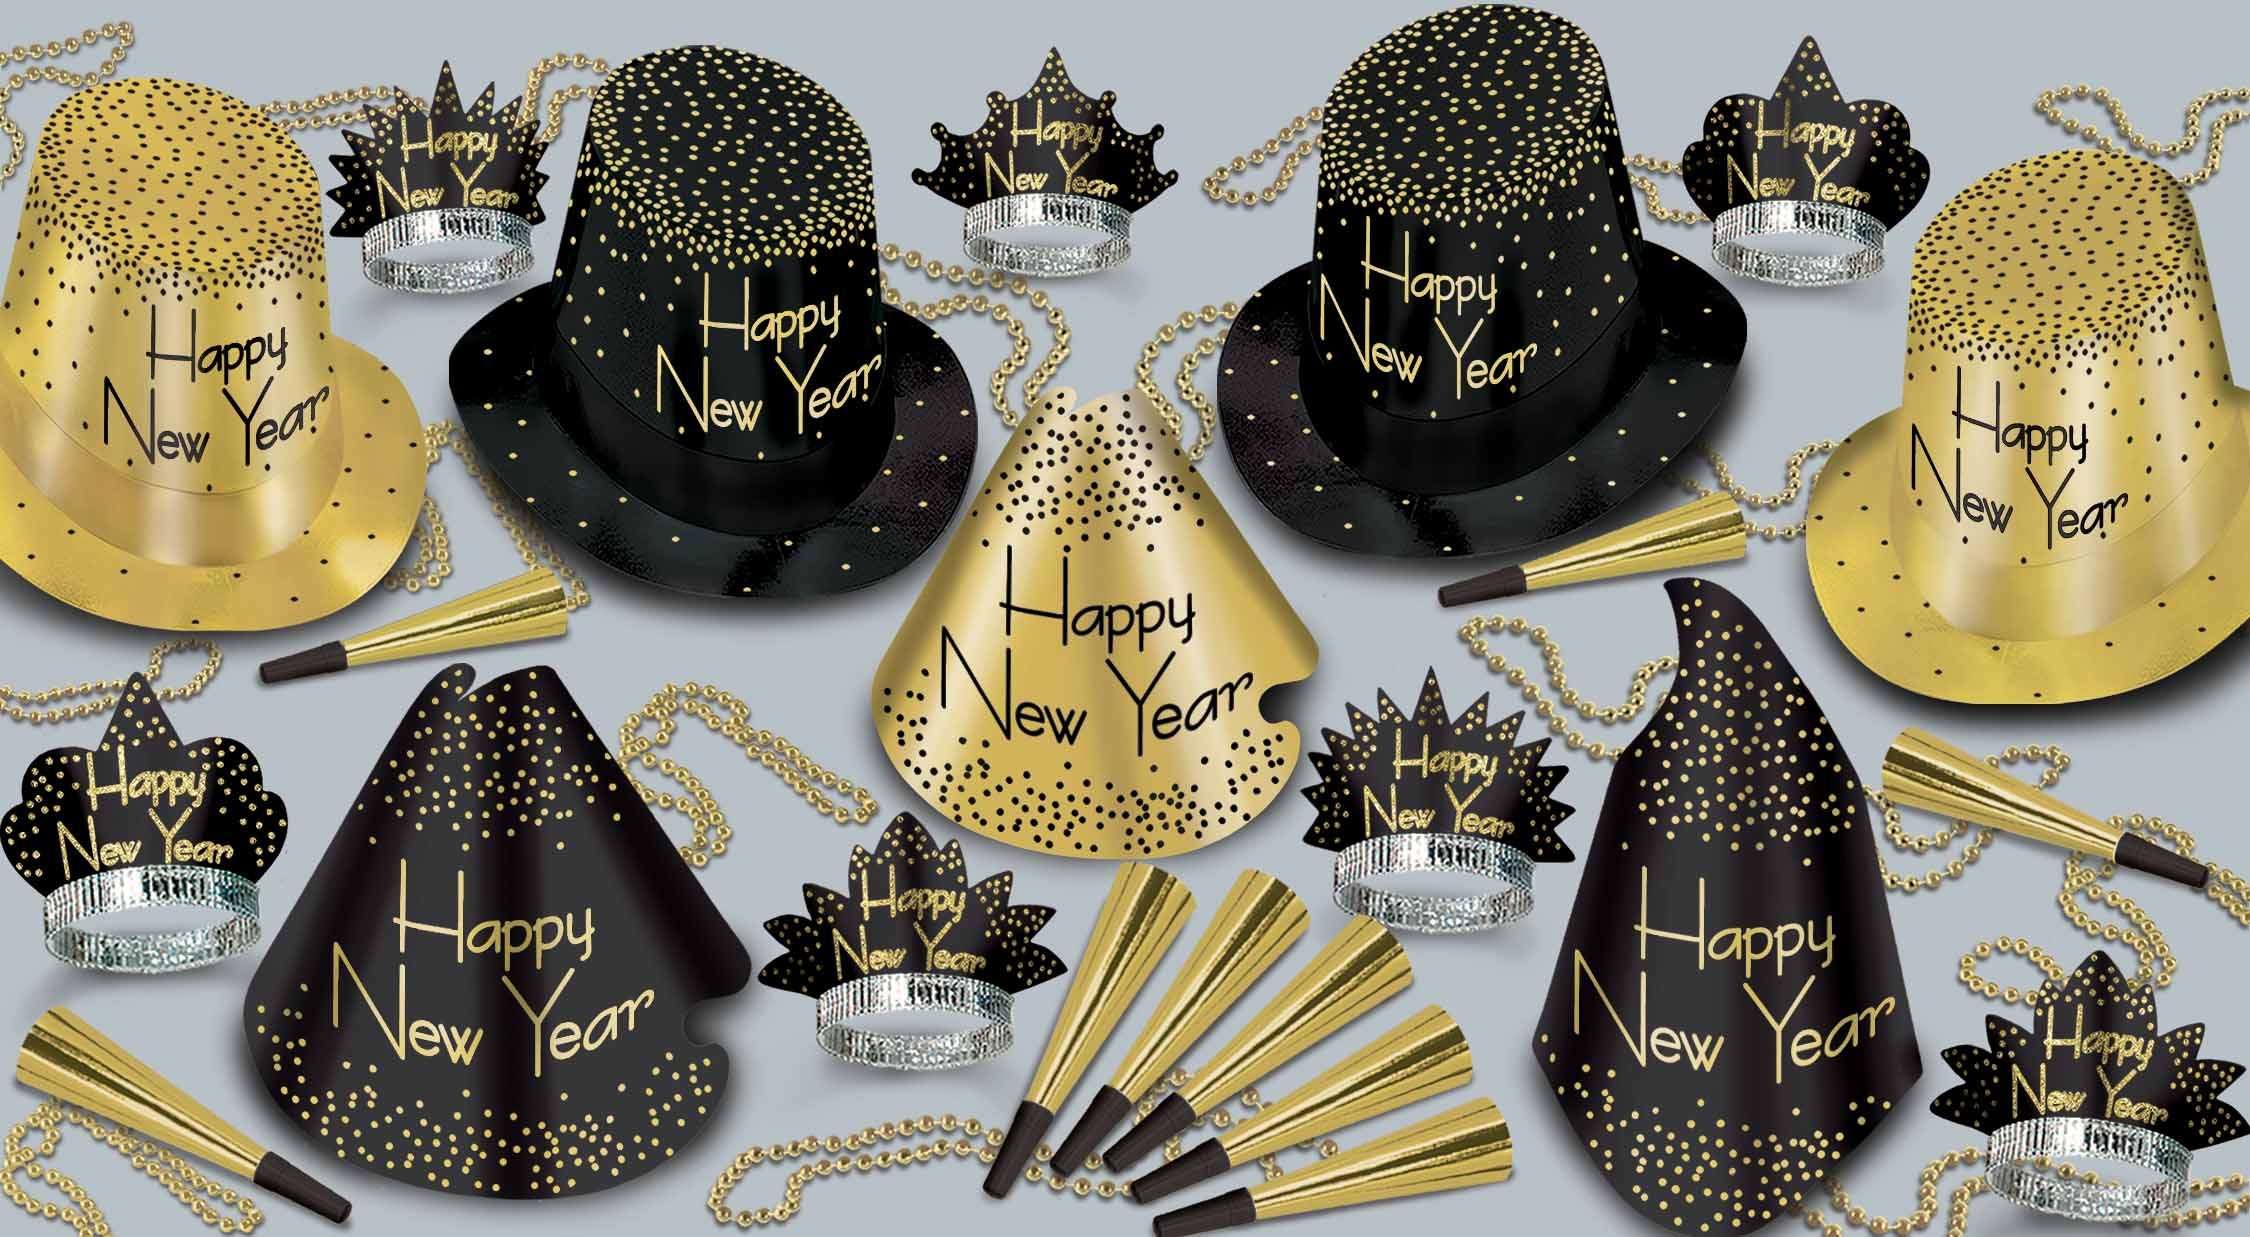 Gold Champagne Assortment for 50 New Year's Eve, New Year's, party goods, party supplies, party kit, assortment, party hats, party horns, tiaras, shiny, sequels, party beads, for 50, bedazzled